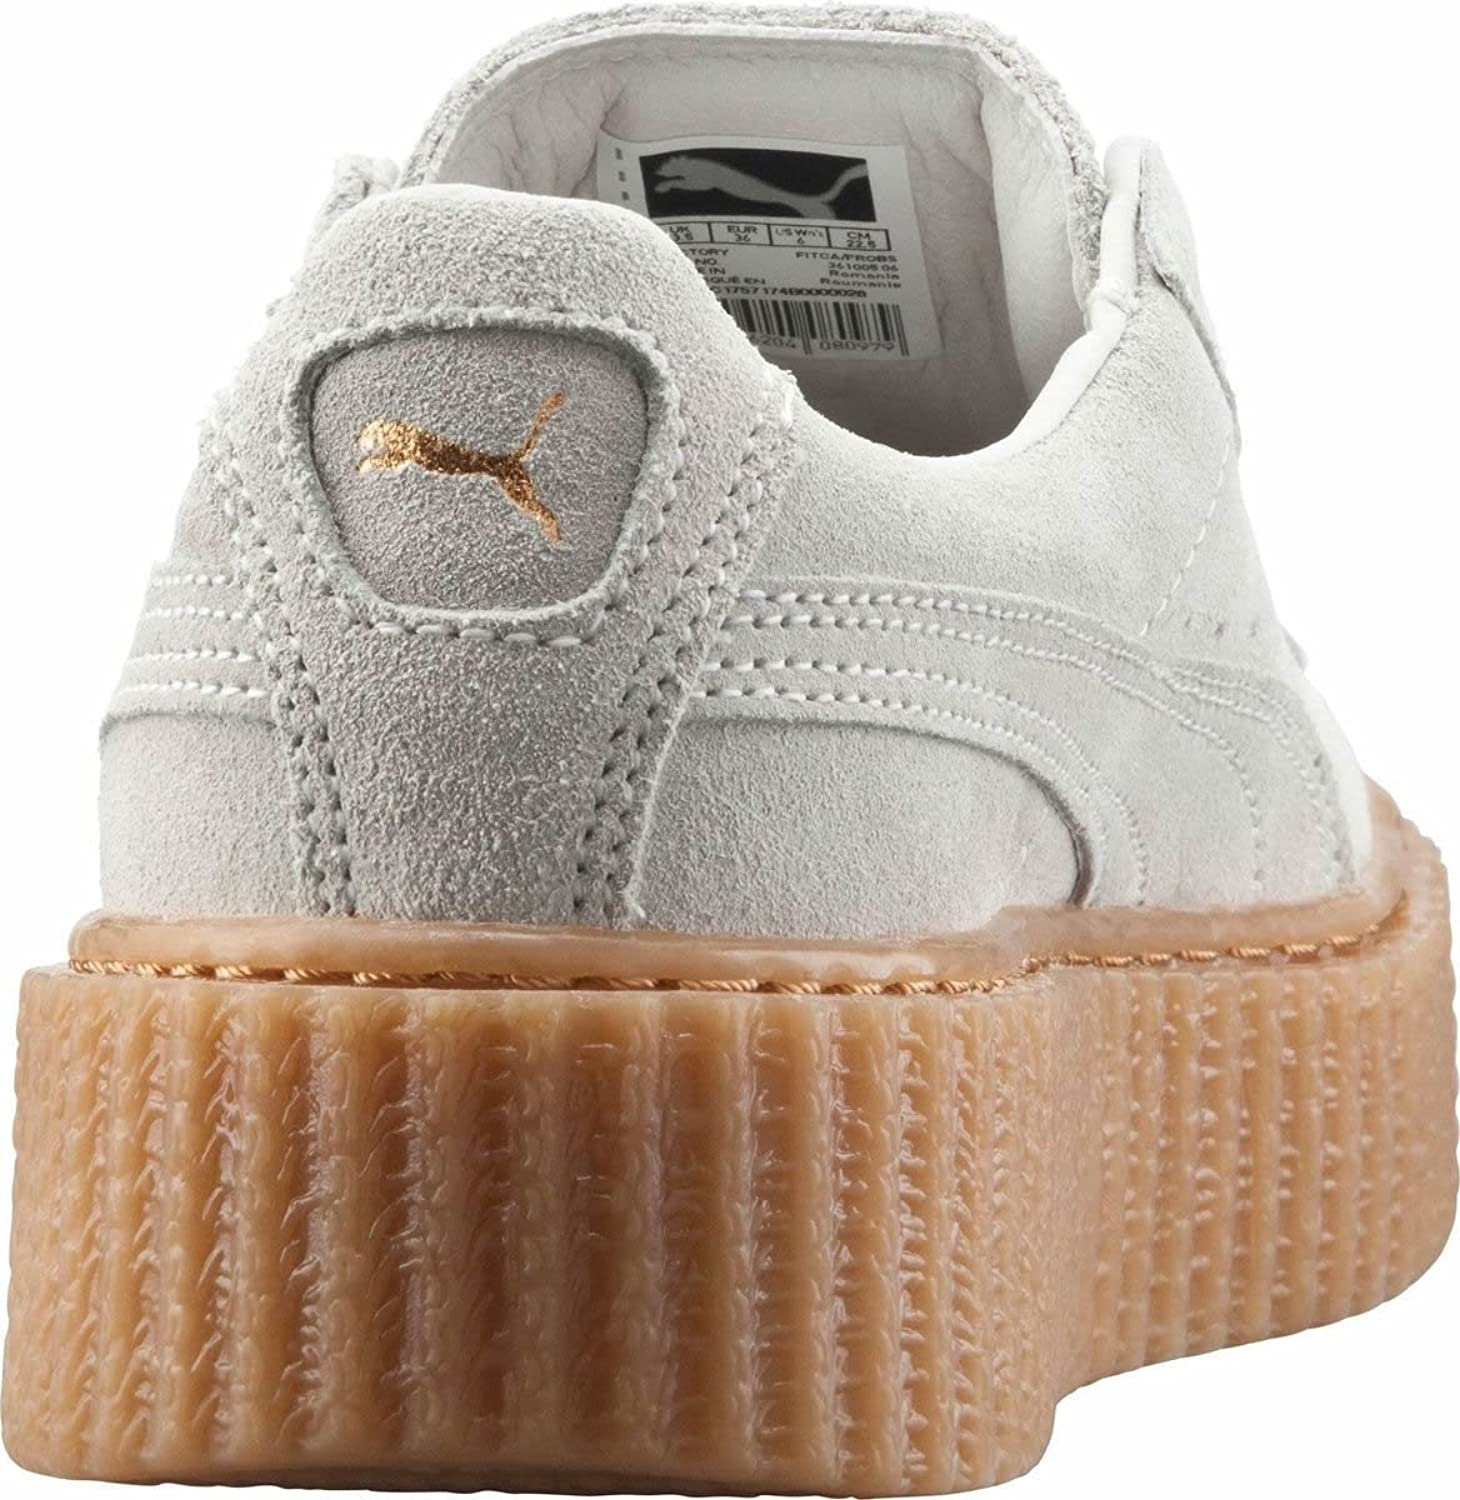 puma creeper weiß damen